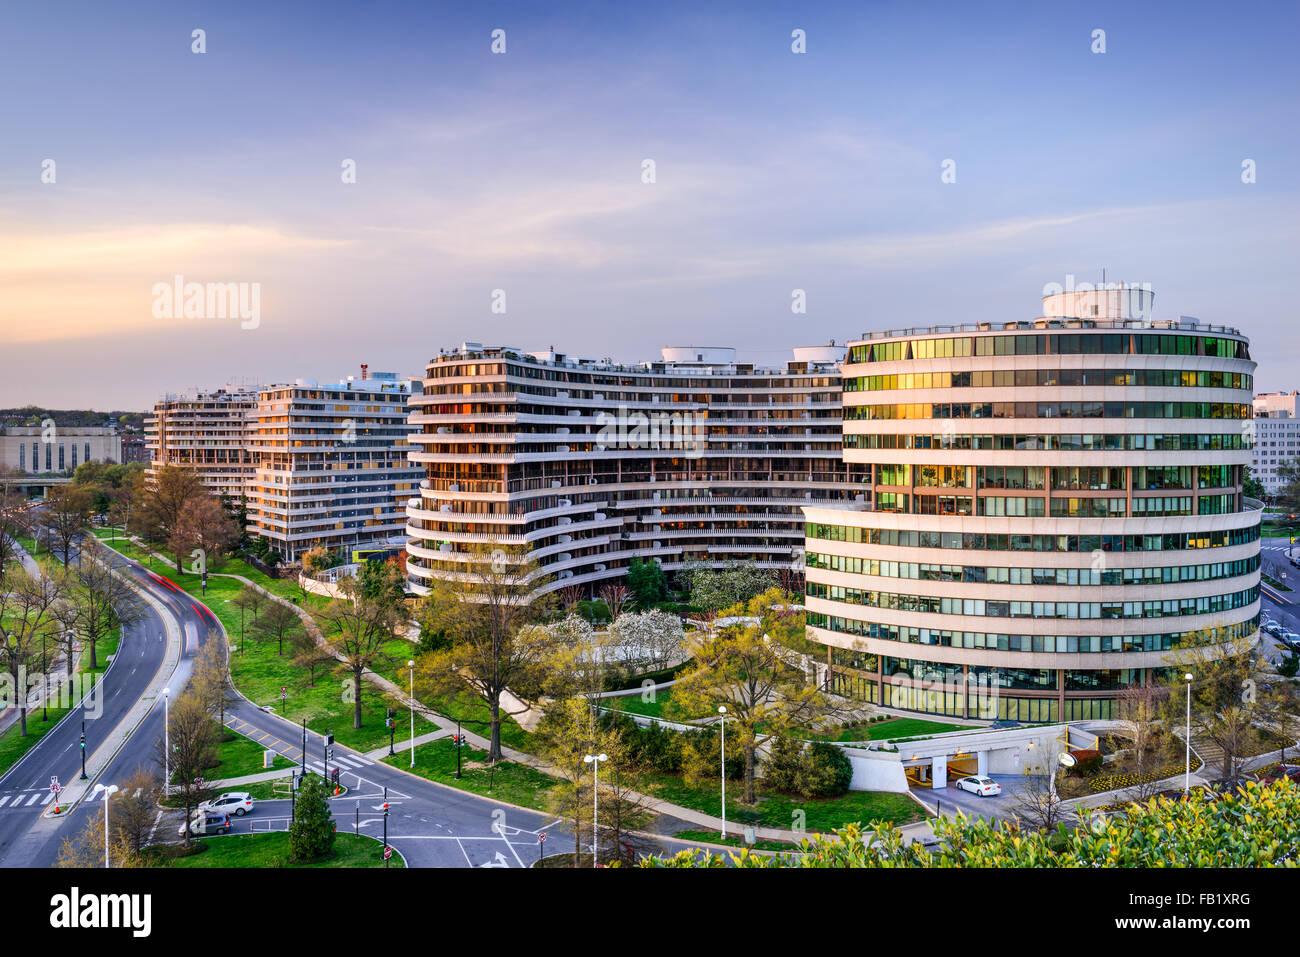 The Watergate Complex in Foggy Bottom, Washington DC, USA. - Stock Image